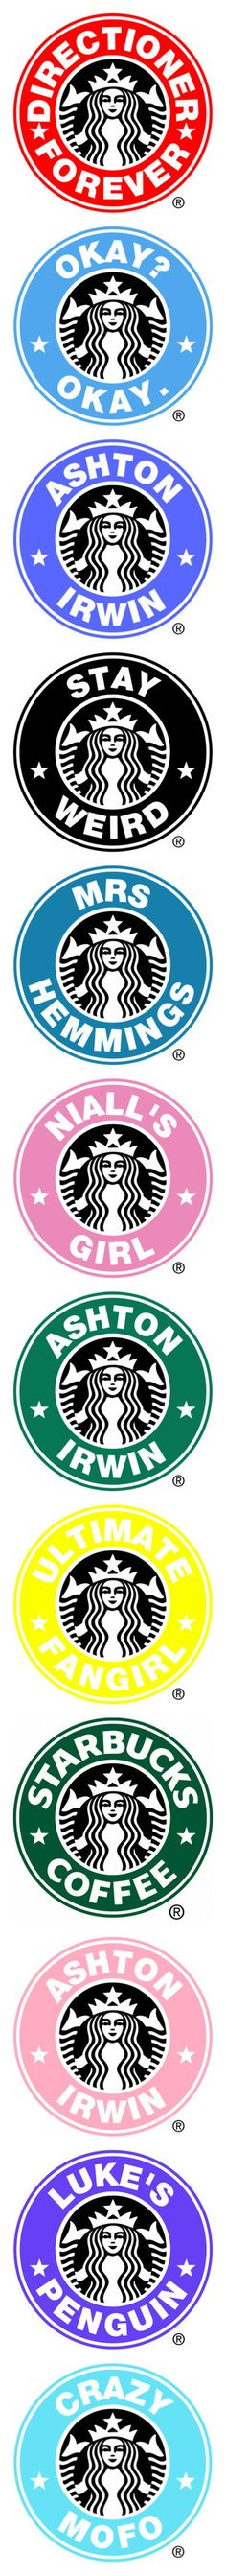 """starbucks"" by miss-971 ❤ liked on Polyvore featuring one direction, backgrounds, logo, other fillers, filler, starbucks logos, other, 5sos, ashton and fillers"